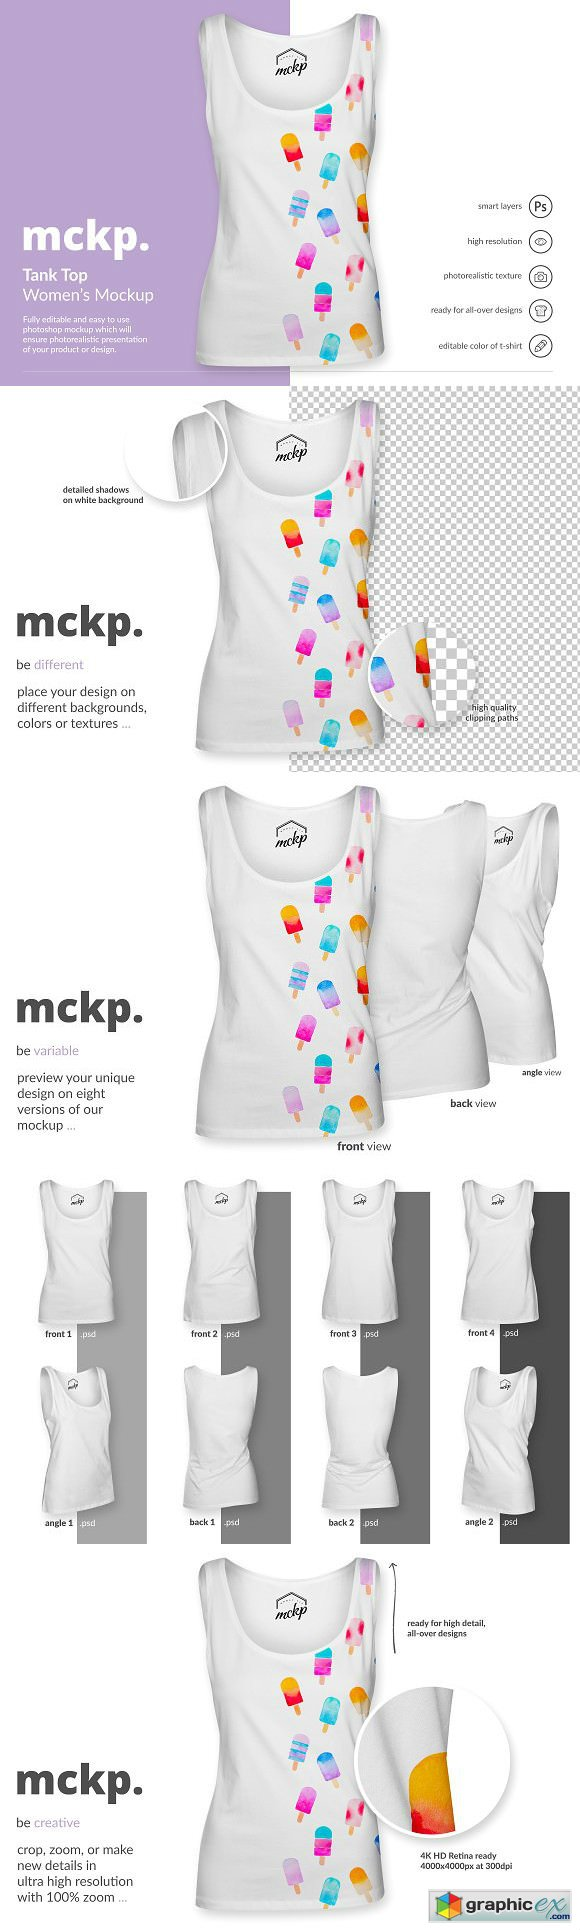 Tank Top by mckp - Womens Mockup